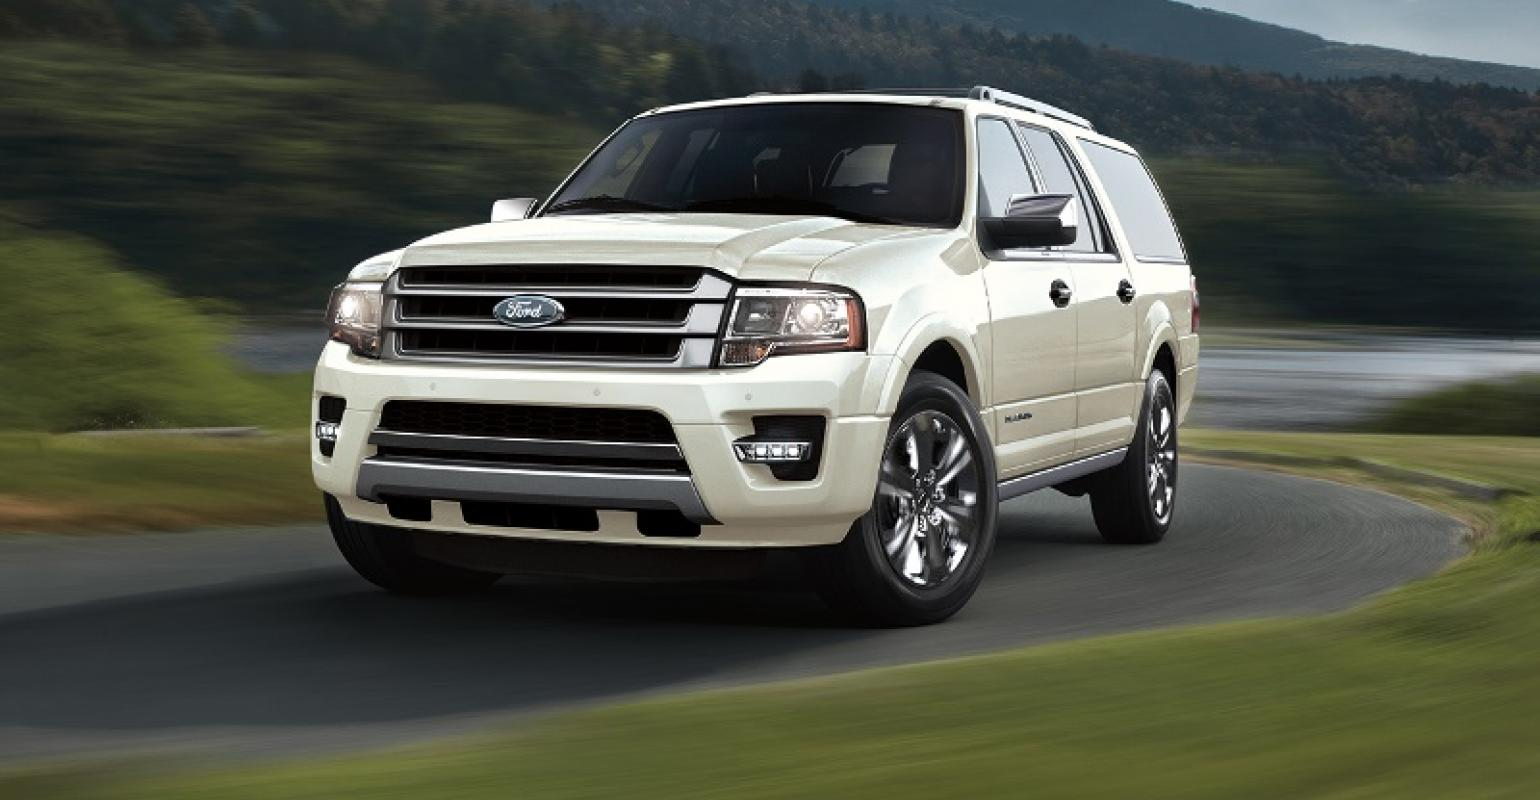 Expedition Lincoln Sales Roar In January Wardsauto